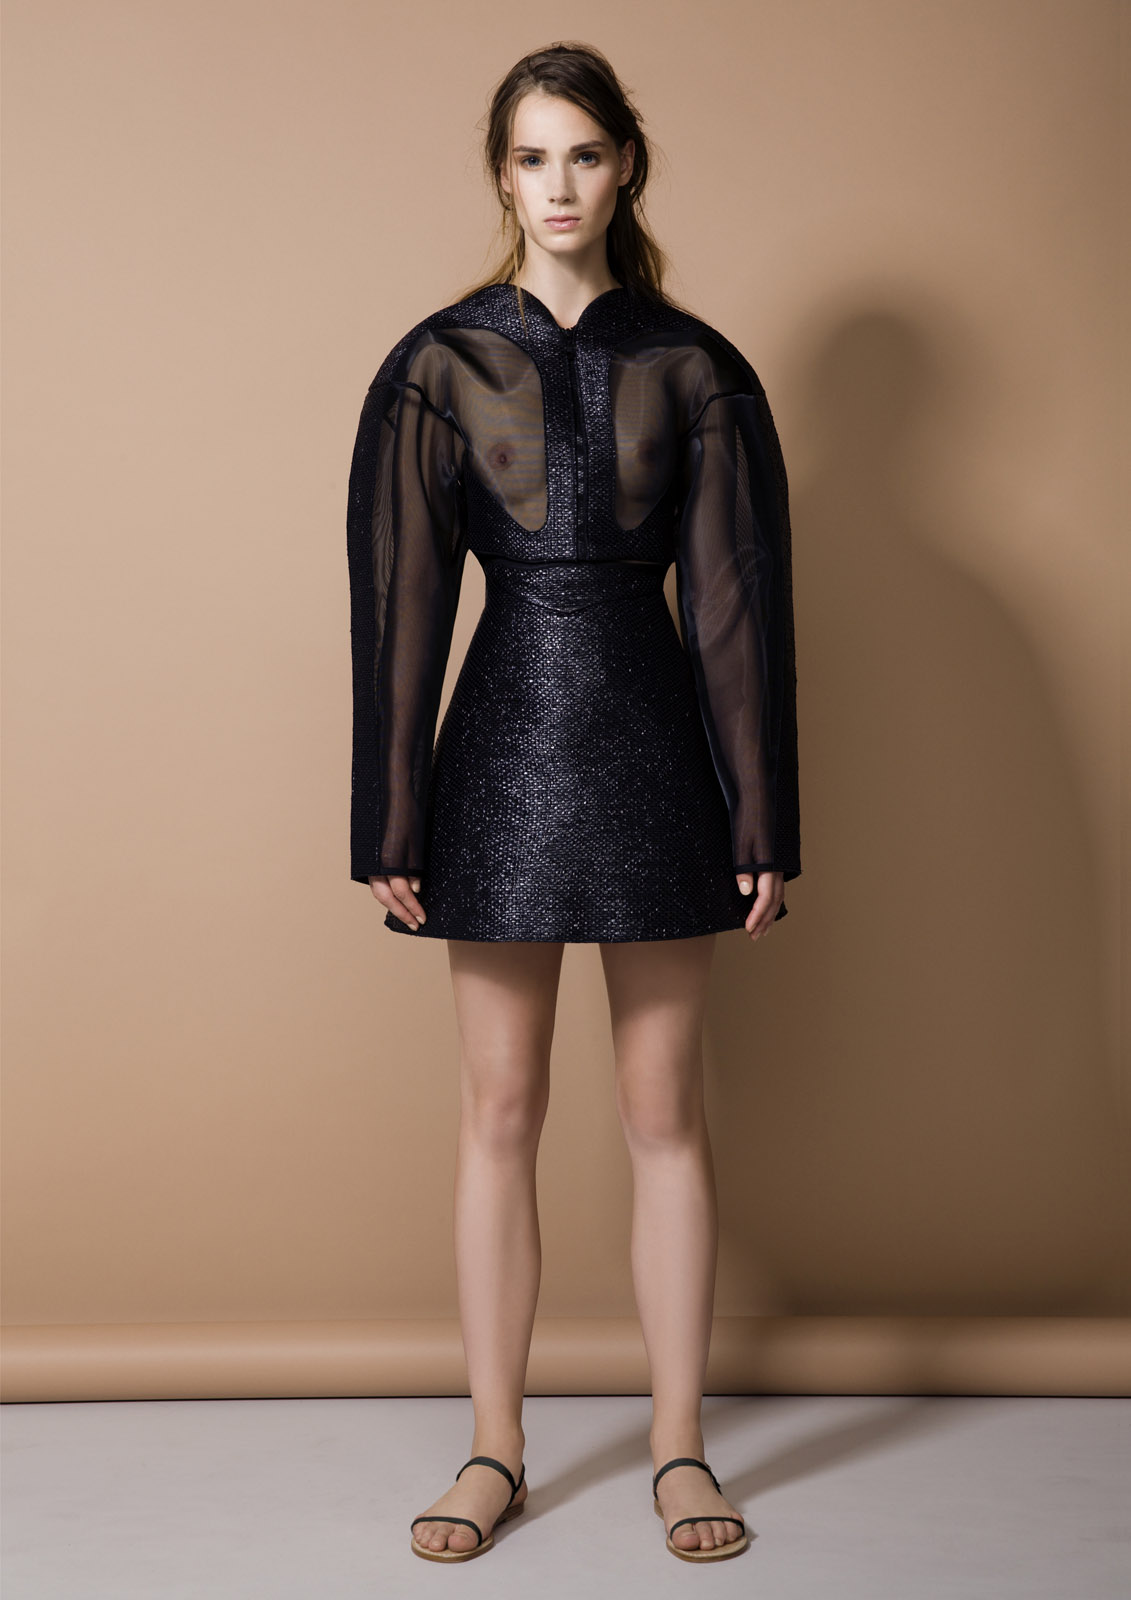 Sylvio Giardina 2015 Spring Summer Collection (7)